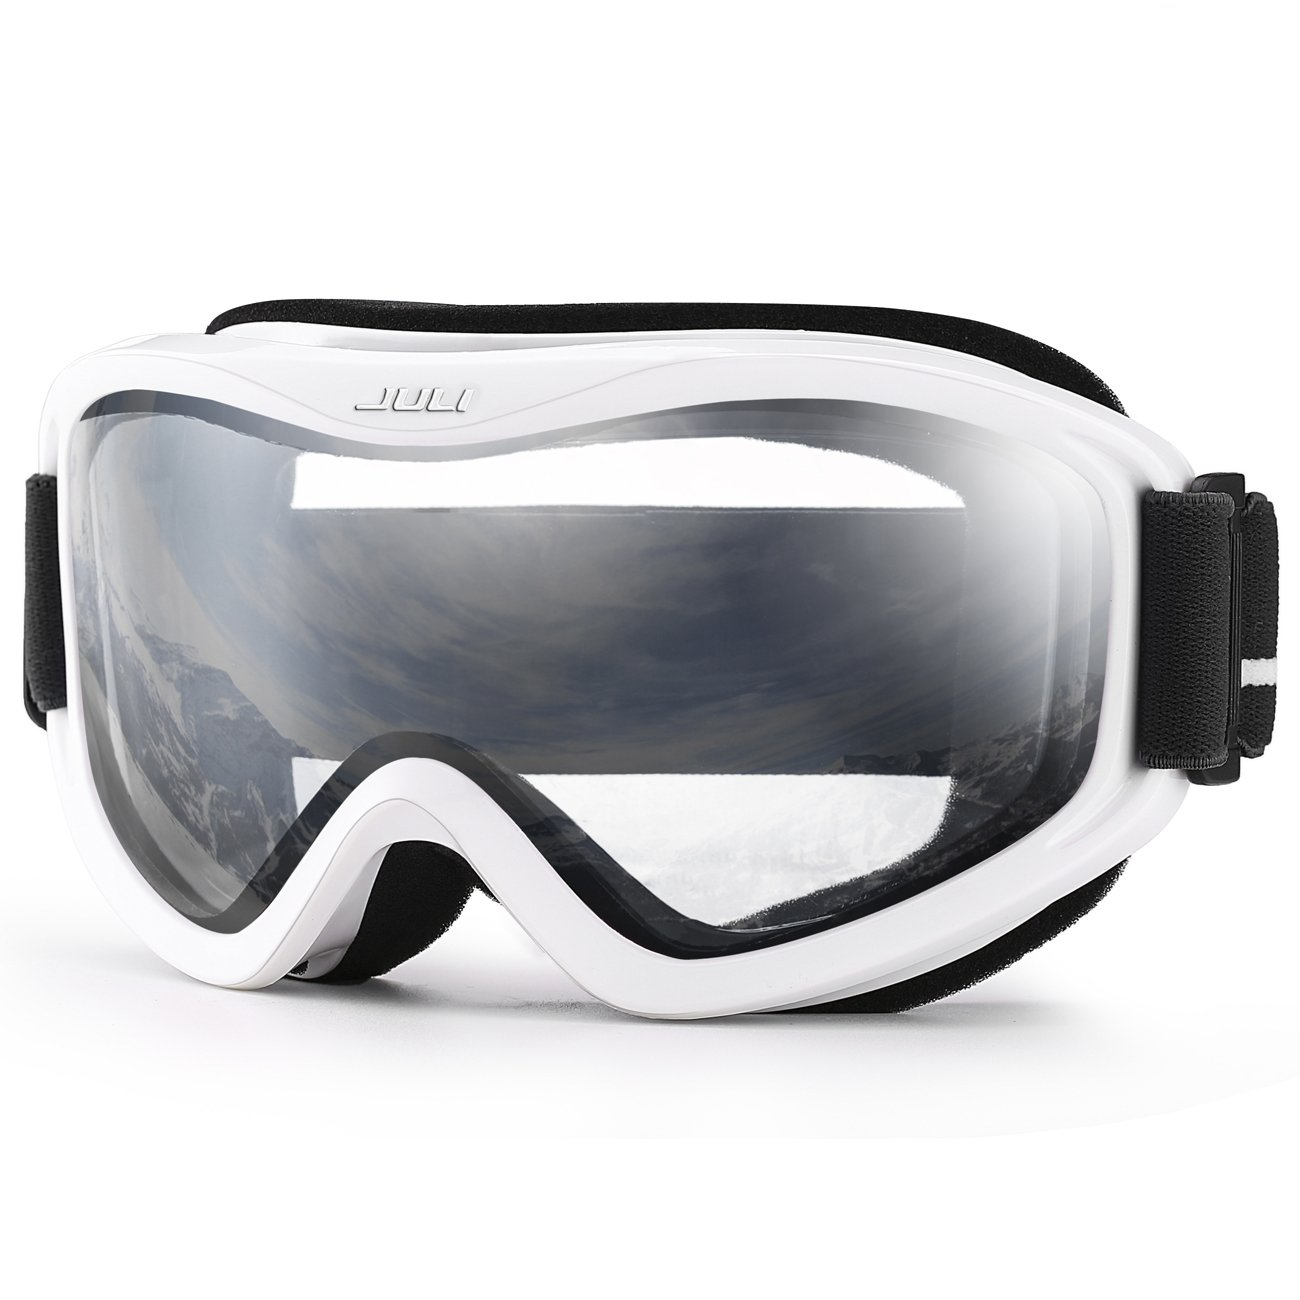 JULI Snowboard Anti fog Protection Snowmobile